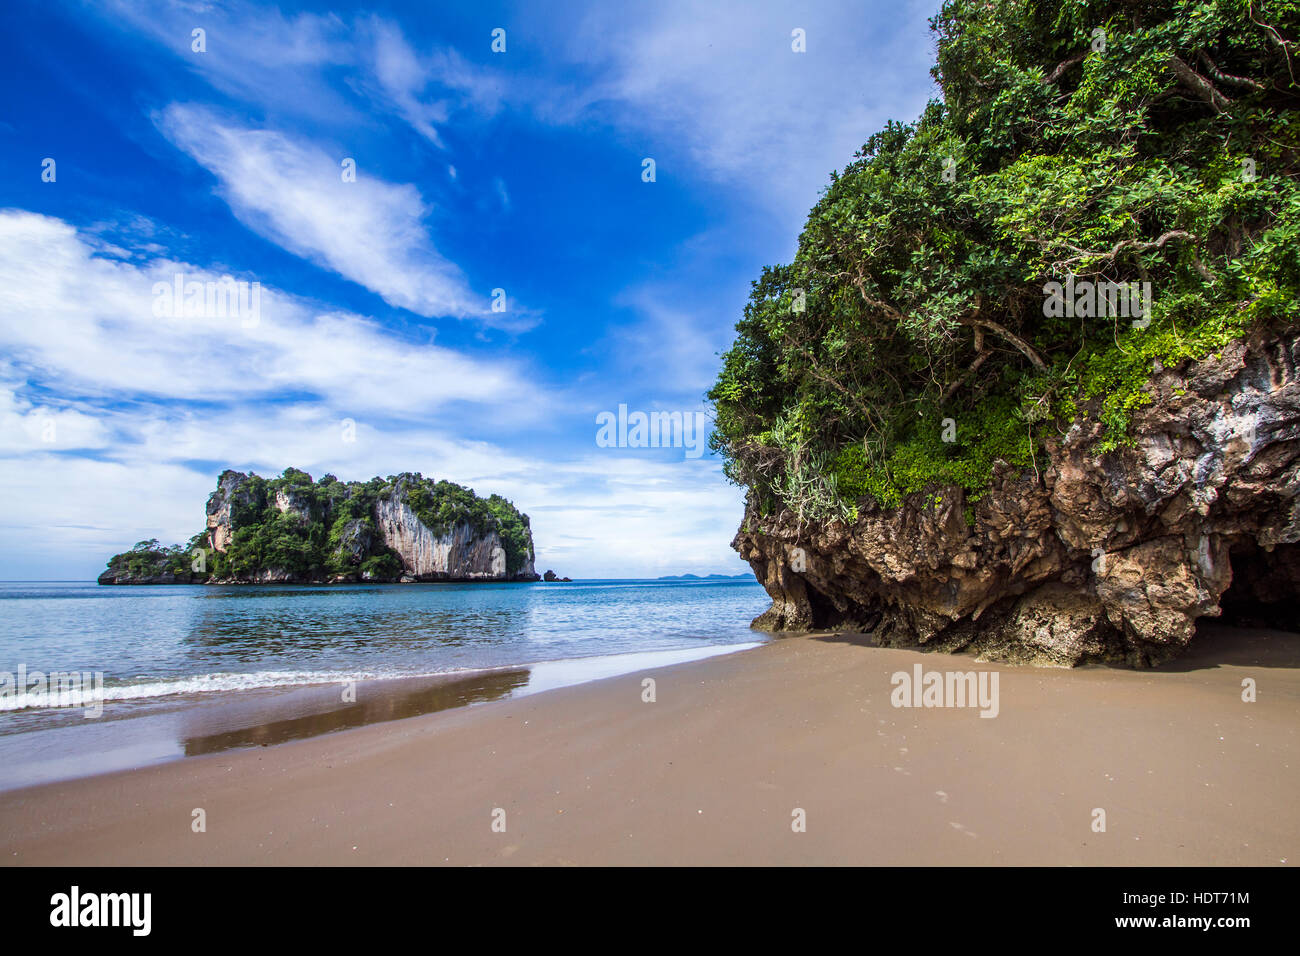 Plage de Hat Chao Mai parc national en Thaïlande Photo Stock